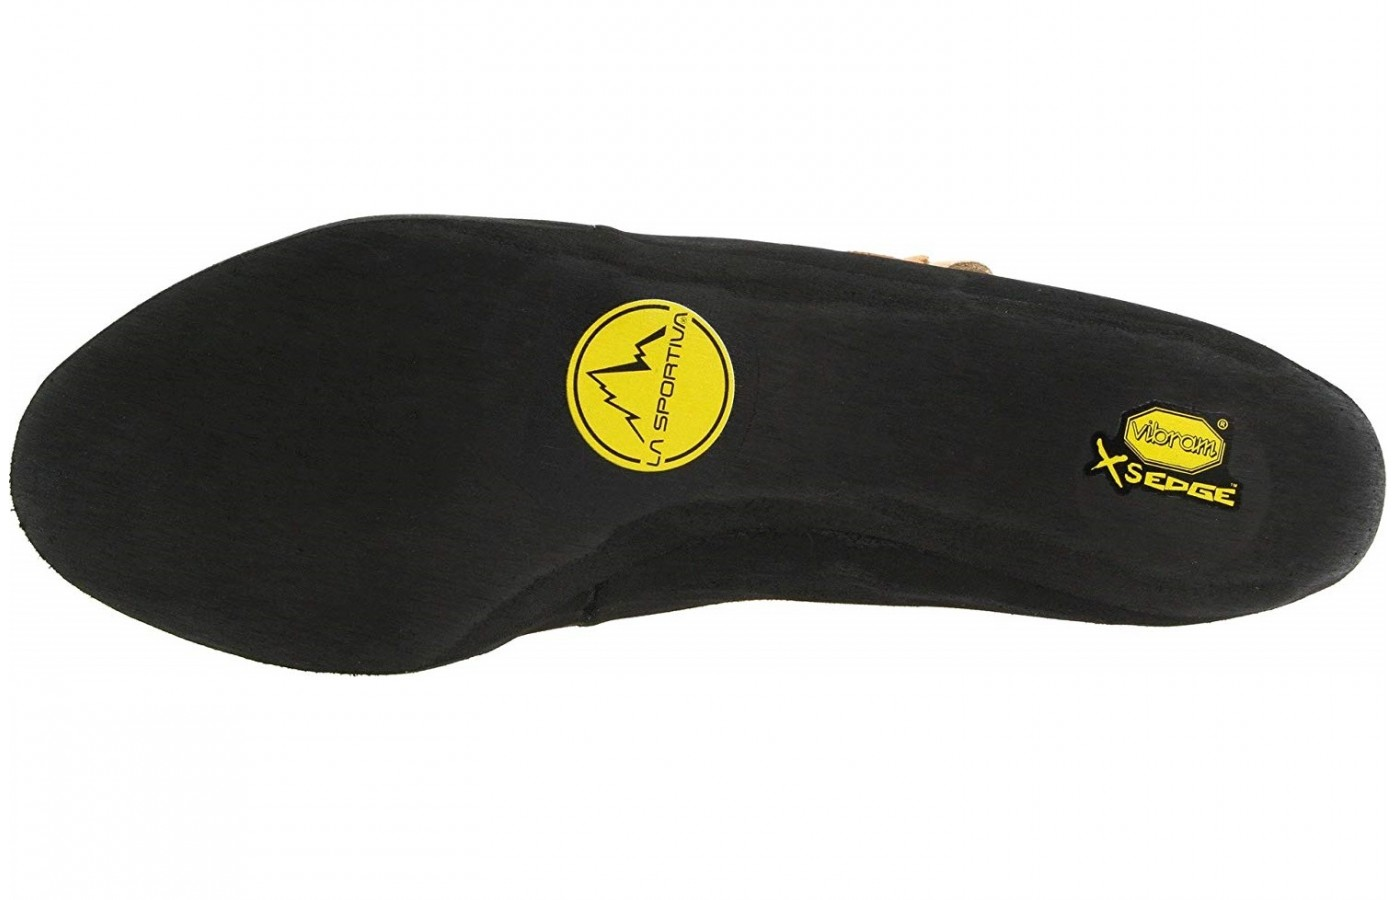 The La Sportiva Mythos offers full Vibram rubber rands for better grip.